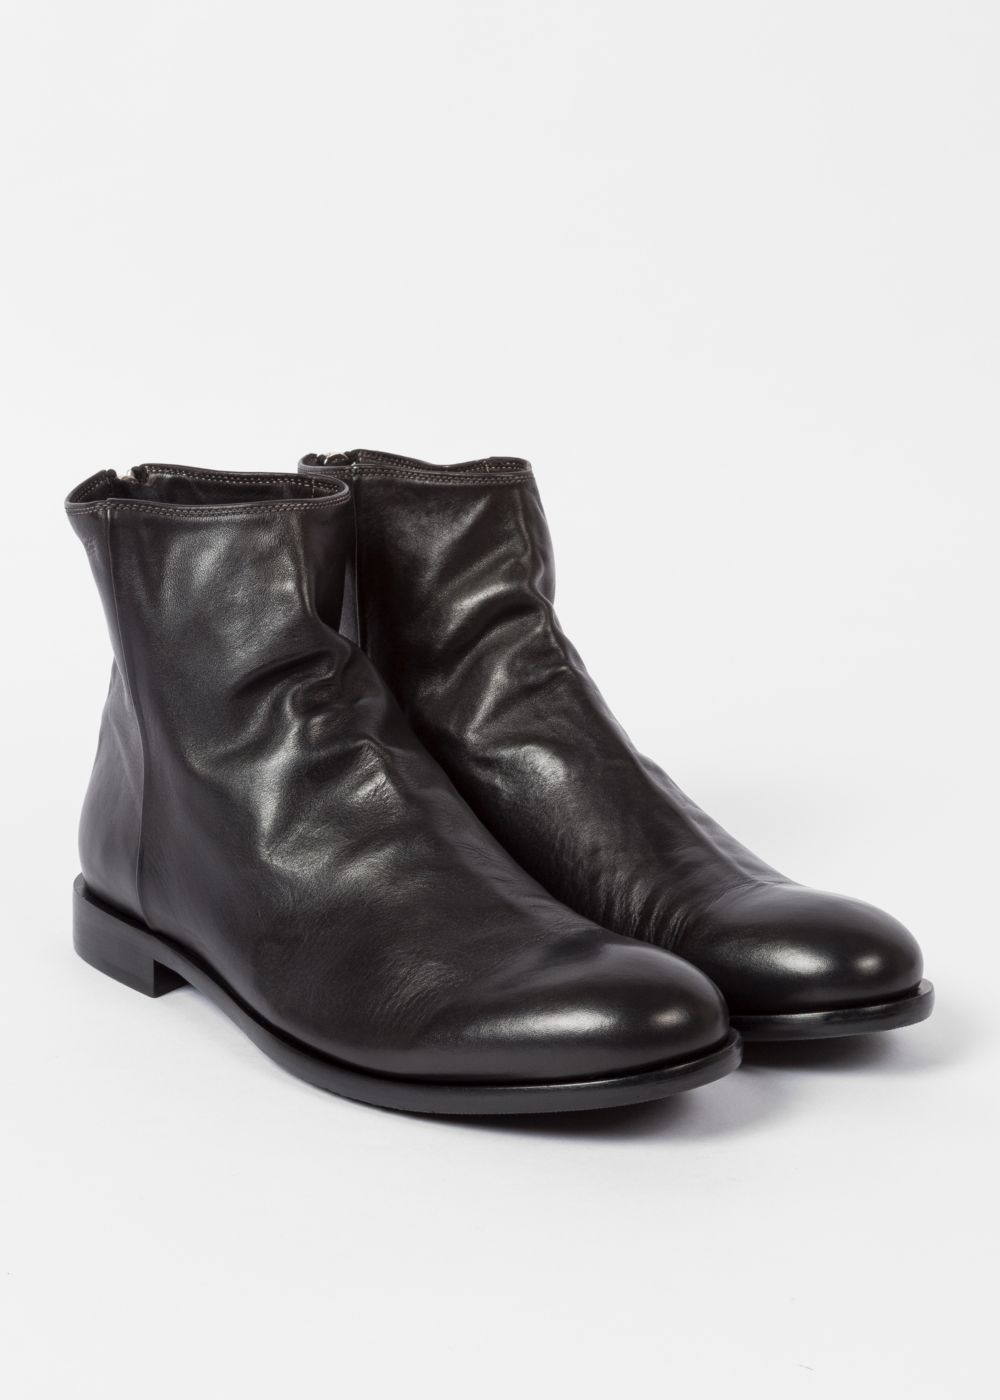 7105e05b7 Men's Dip-Dyed Black Calf Leather 'Jean' Boots | RB.Casual | Leather ...